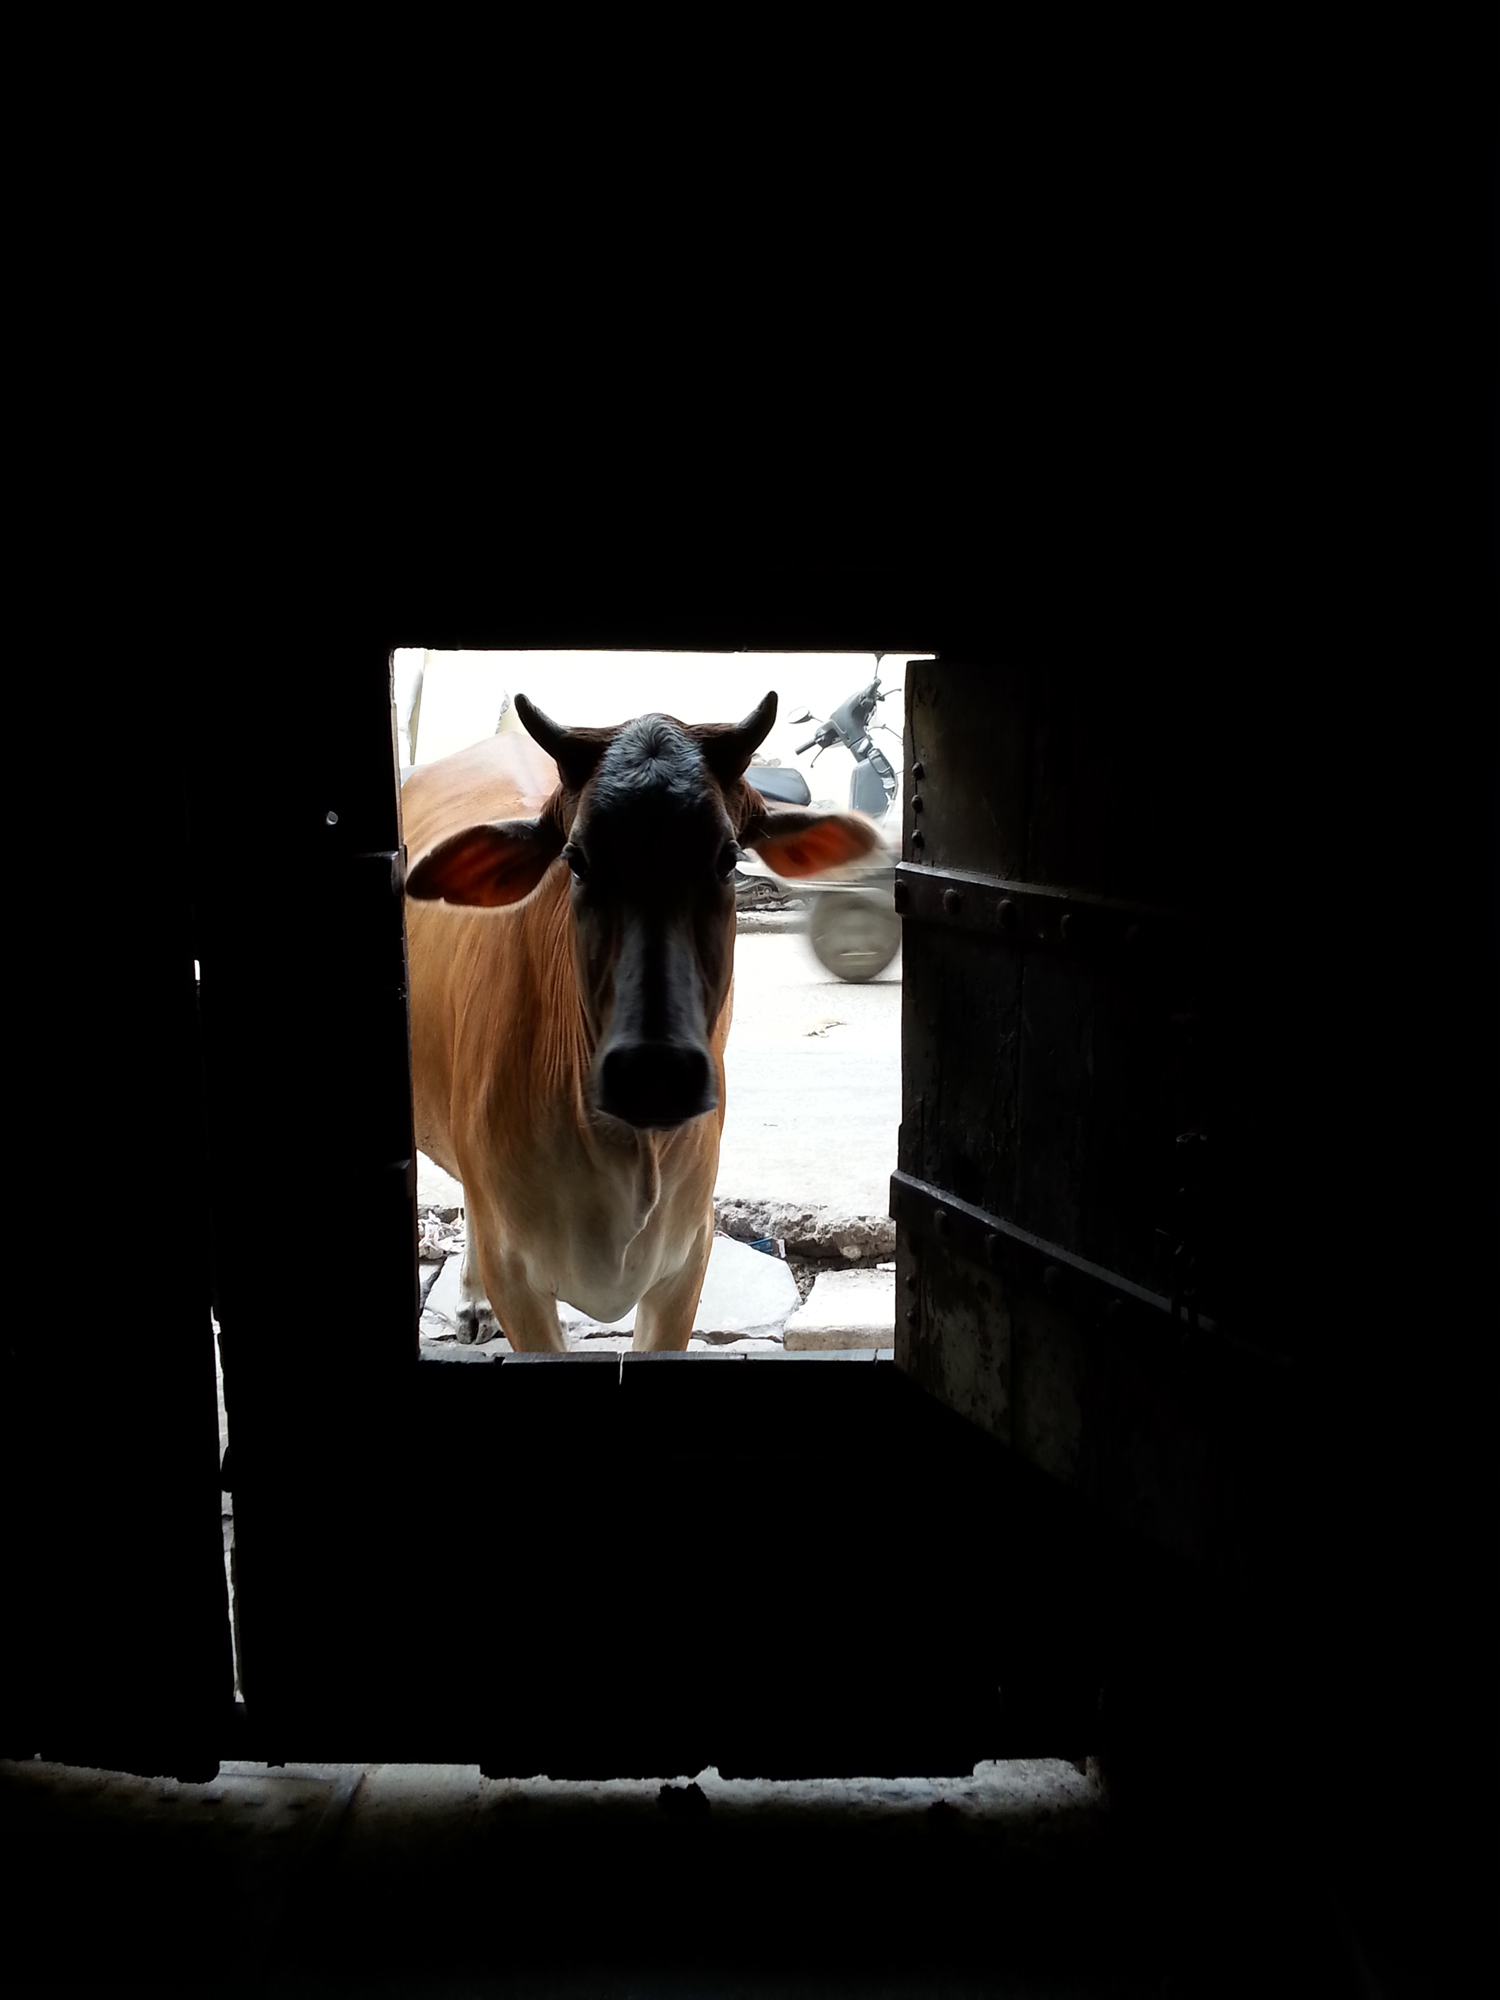 A cow was waiting for the gate to open so that she could enter the gate and sit in the shade.